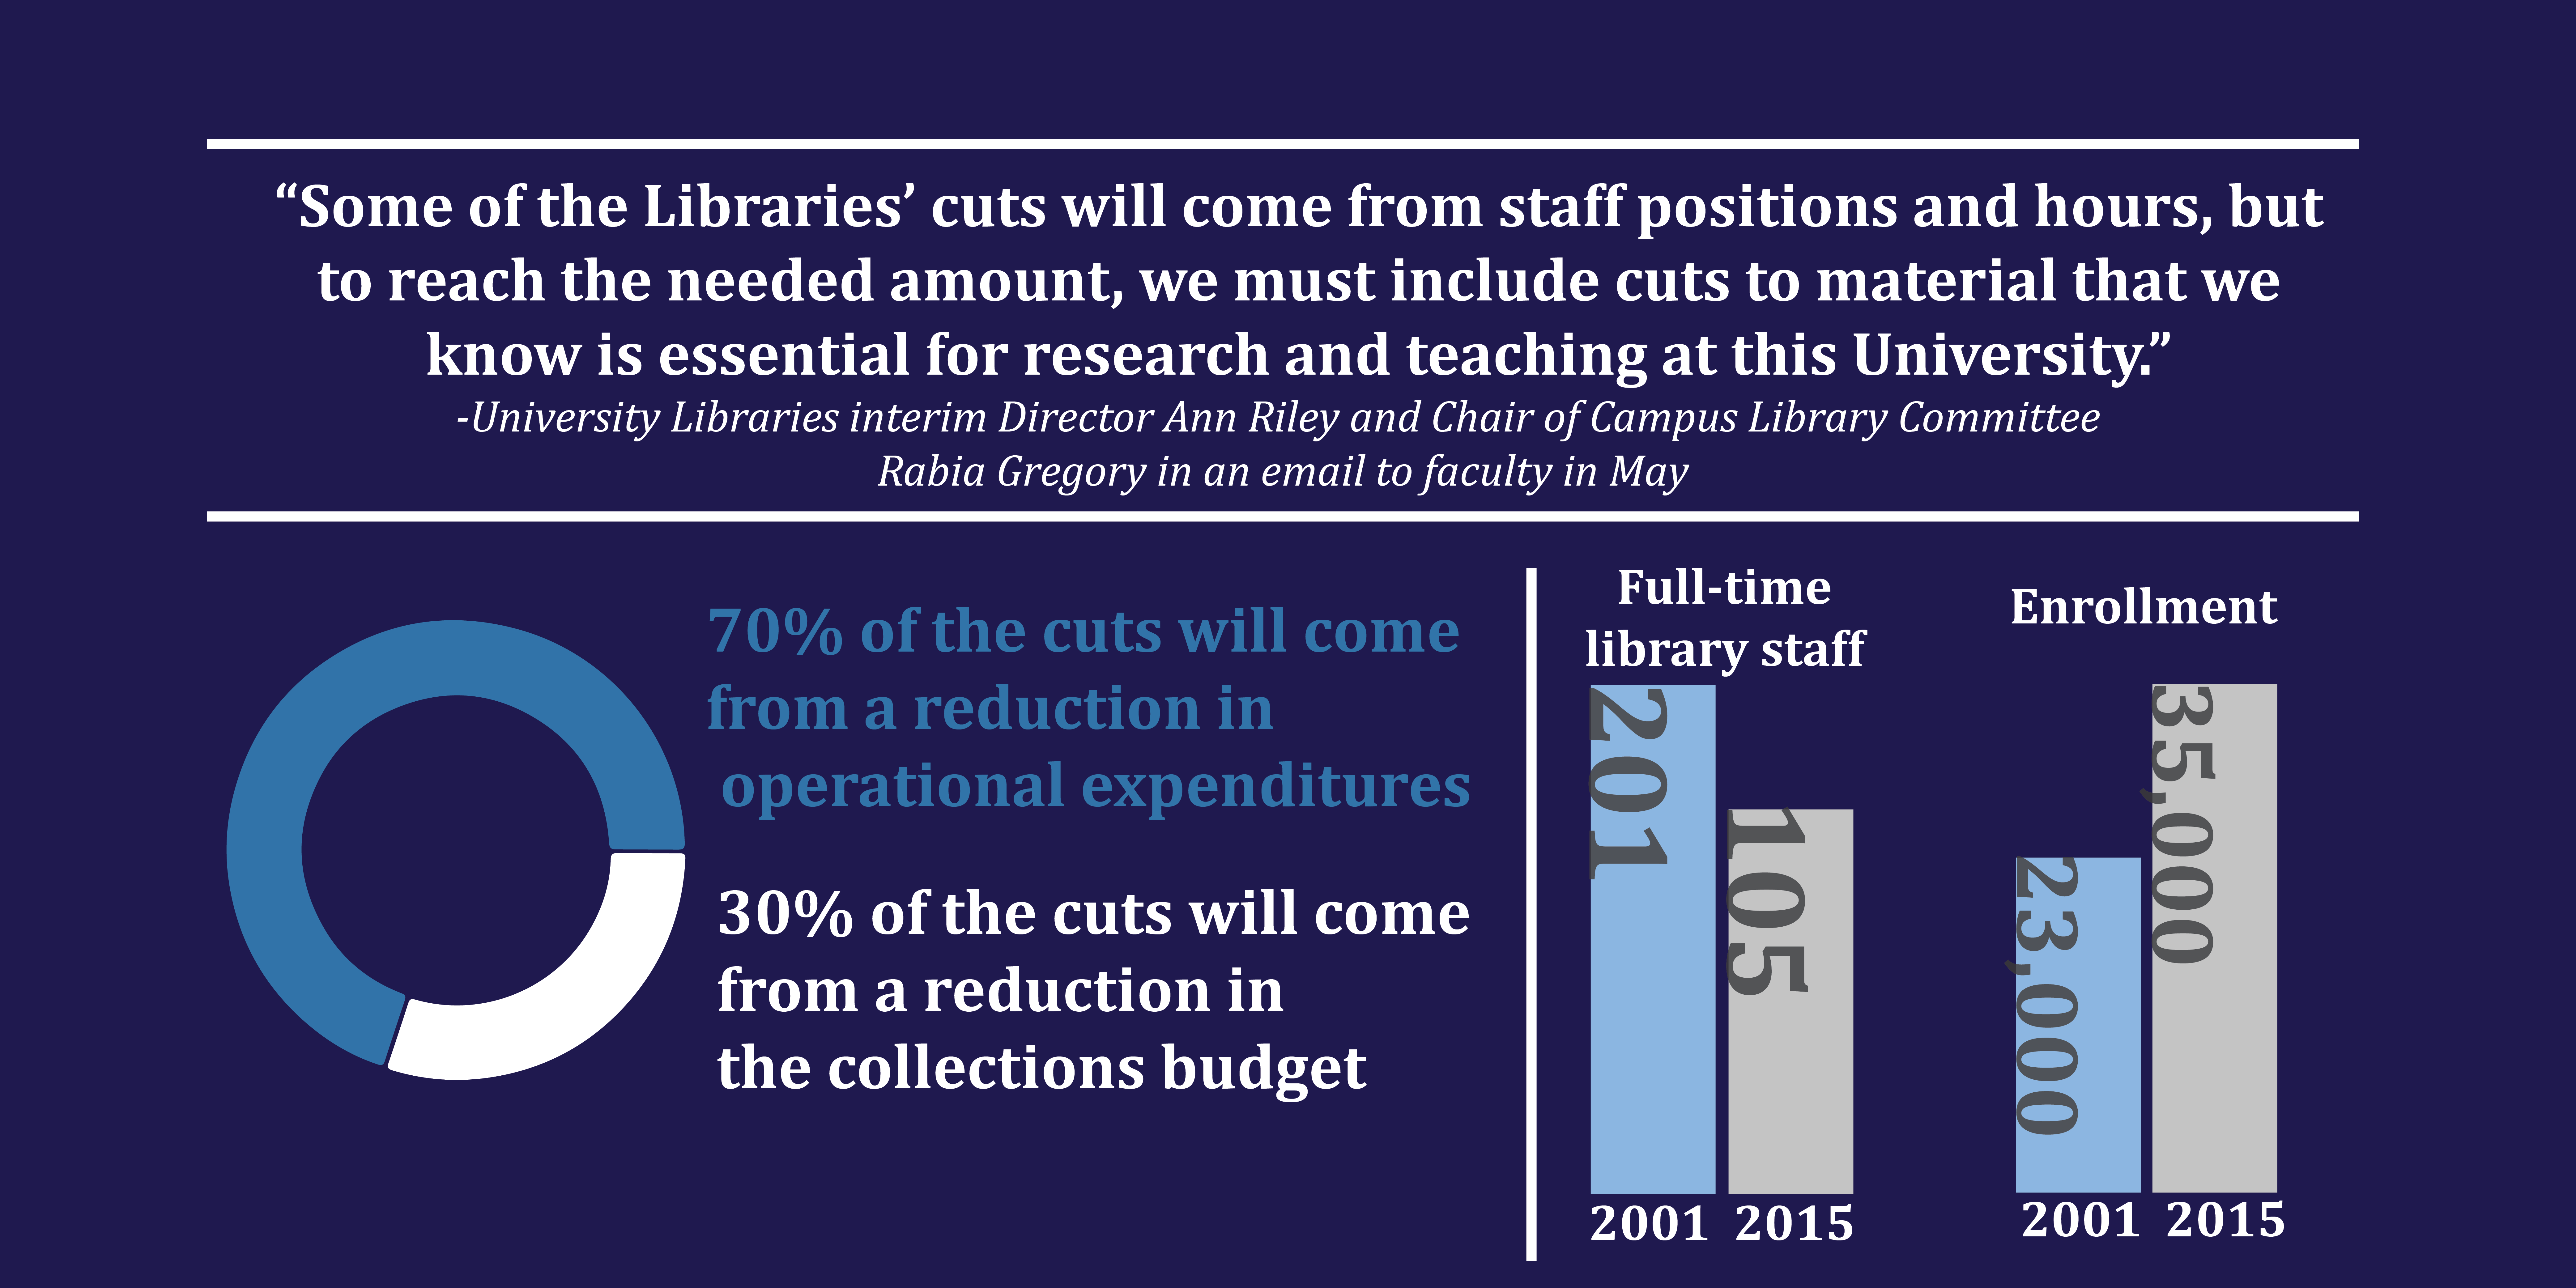 MU Libraries brace for 17 percent reduction in collection expenditures